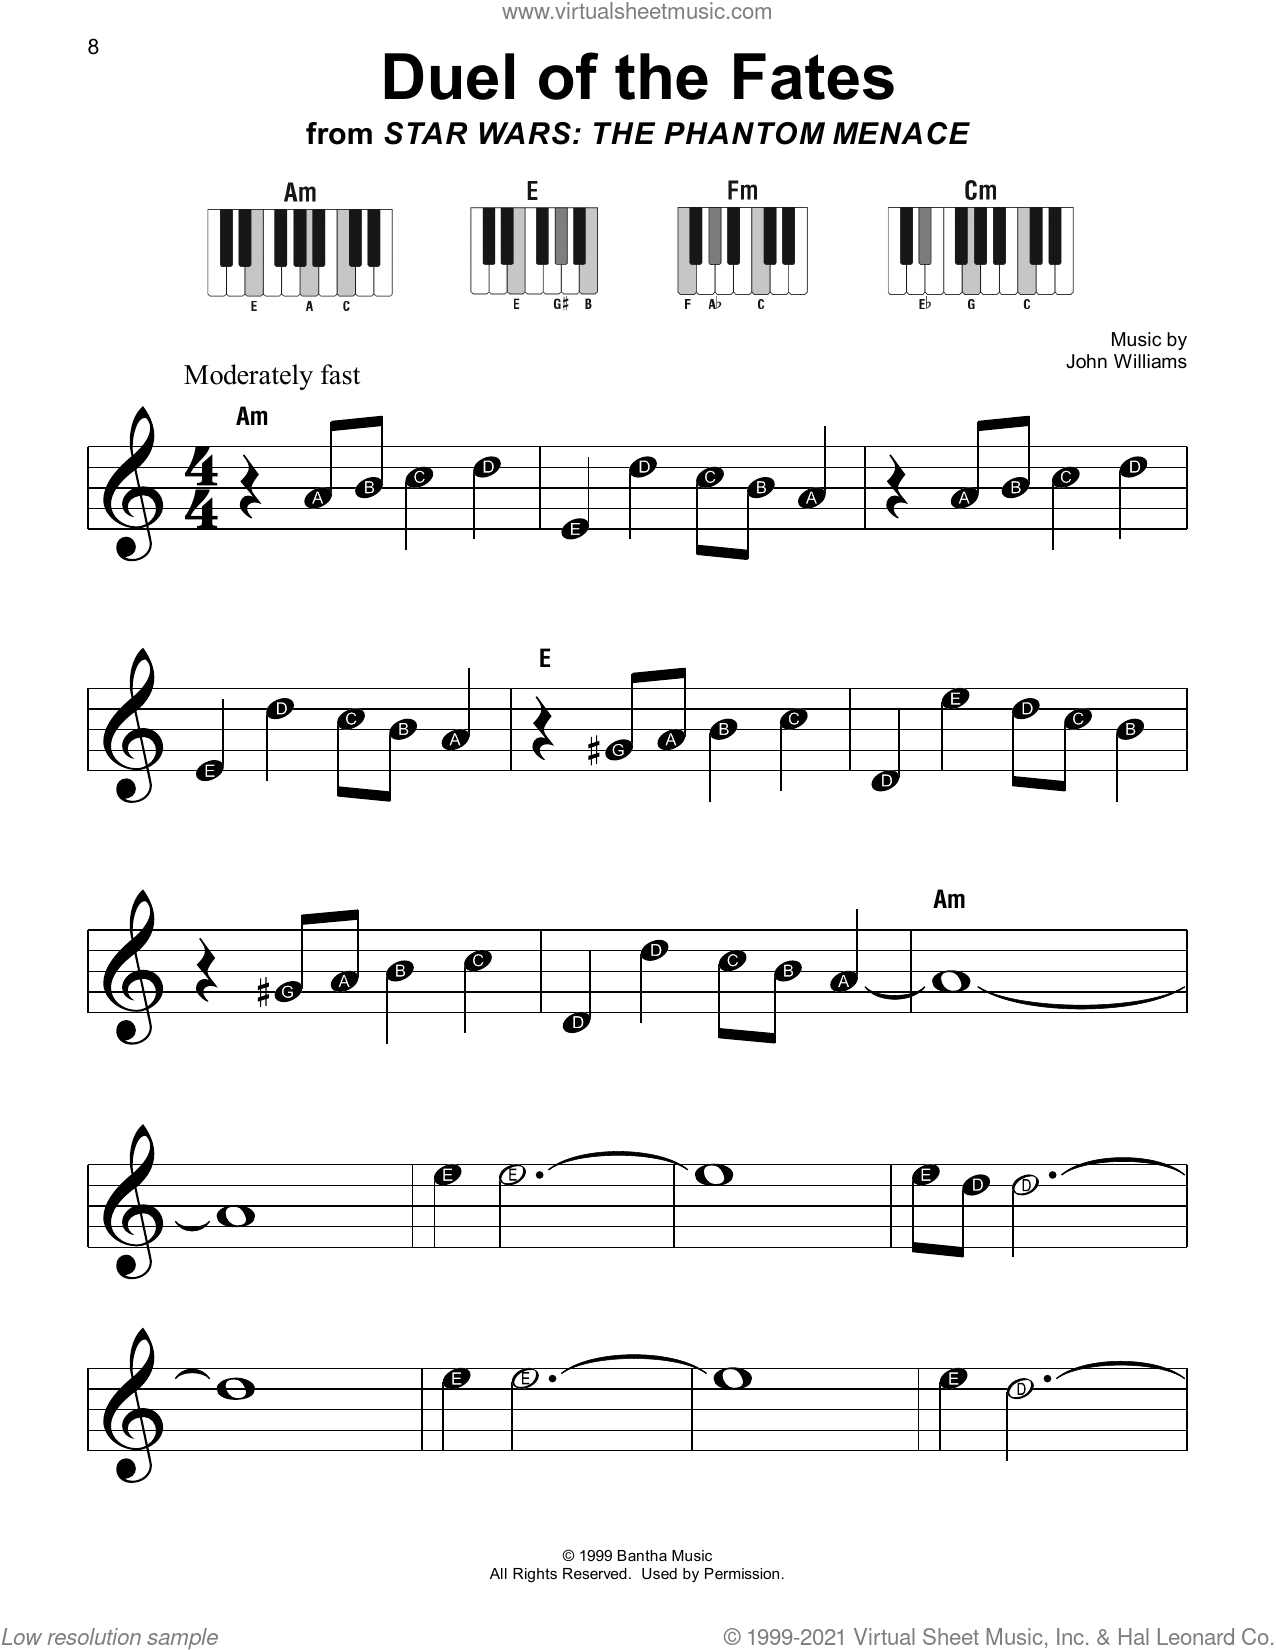 Duel Of The Fates (from Star Wars: The Phantom Menace) sheet music for piano solo by John Williams, beginner skill level